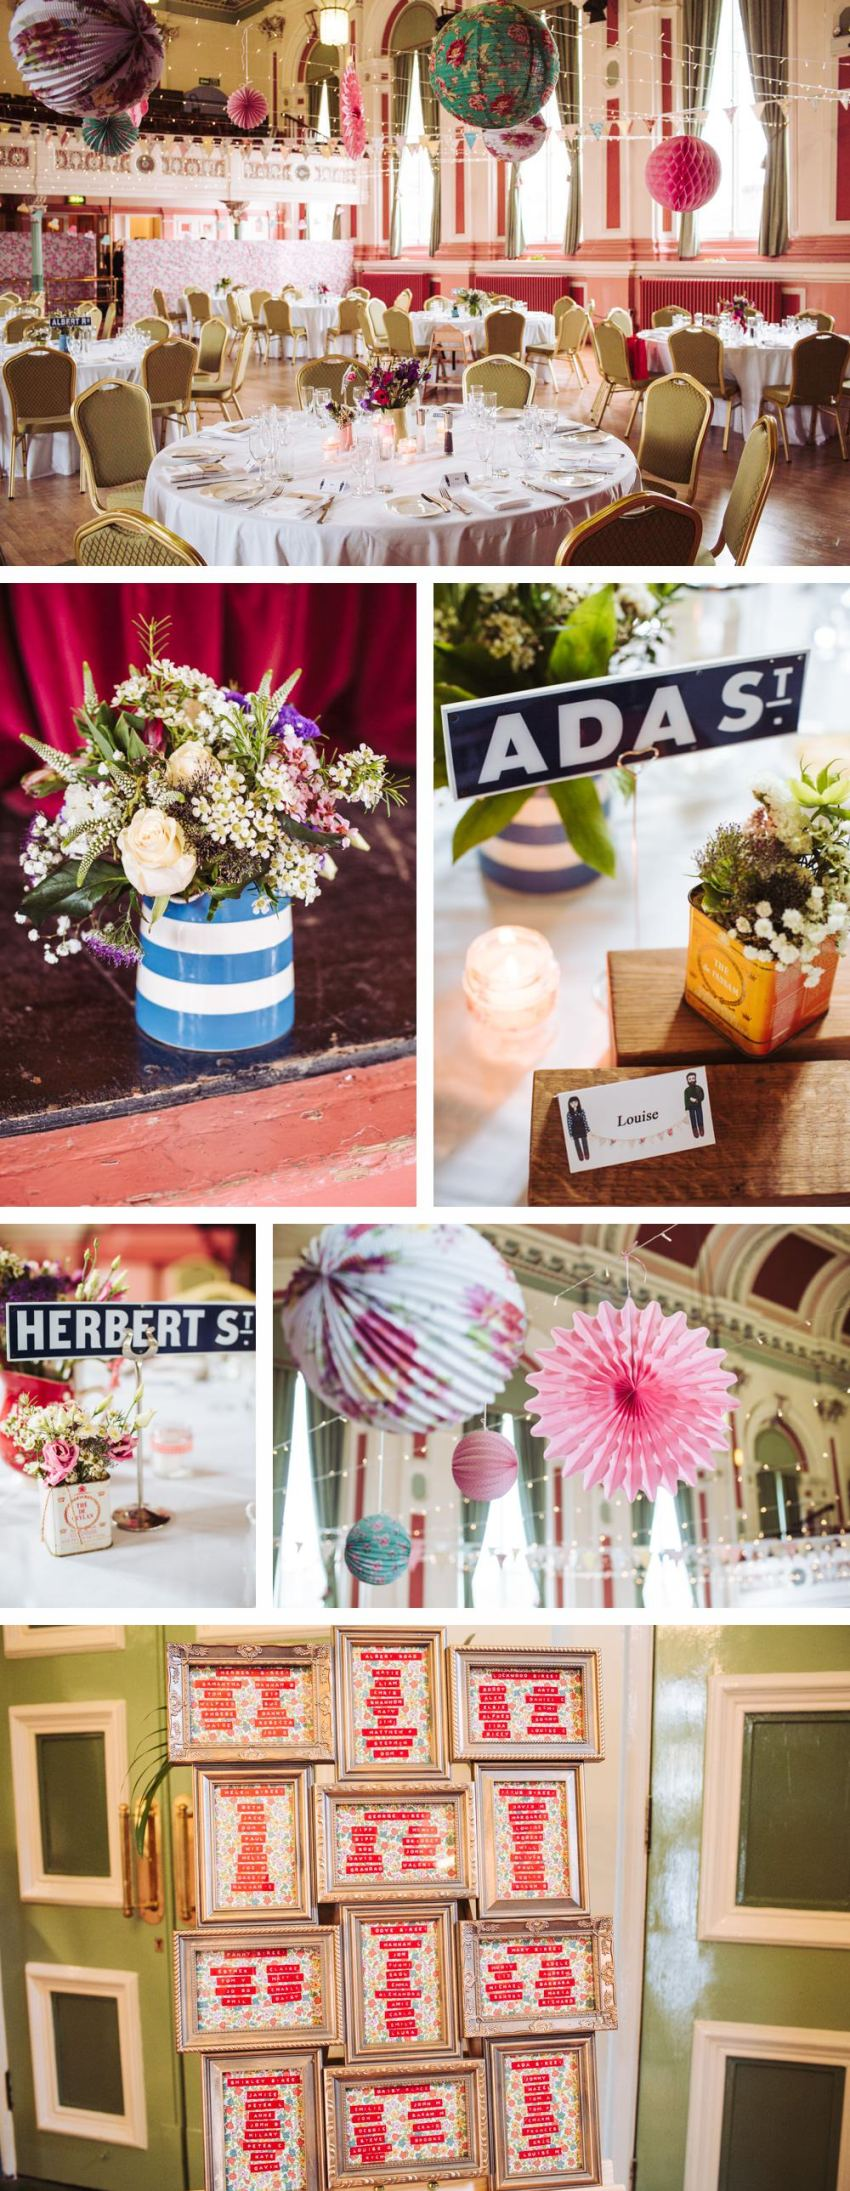 Saltaire Victoria Hall wedding with vintage retro decorations. Including Dymo gun table planner and vintage tins for florals.